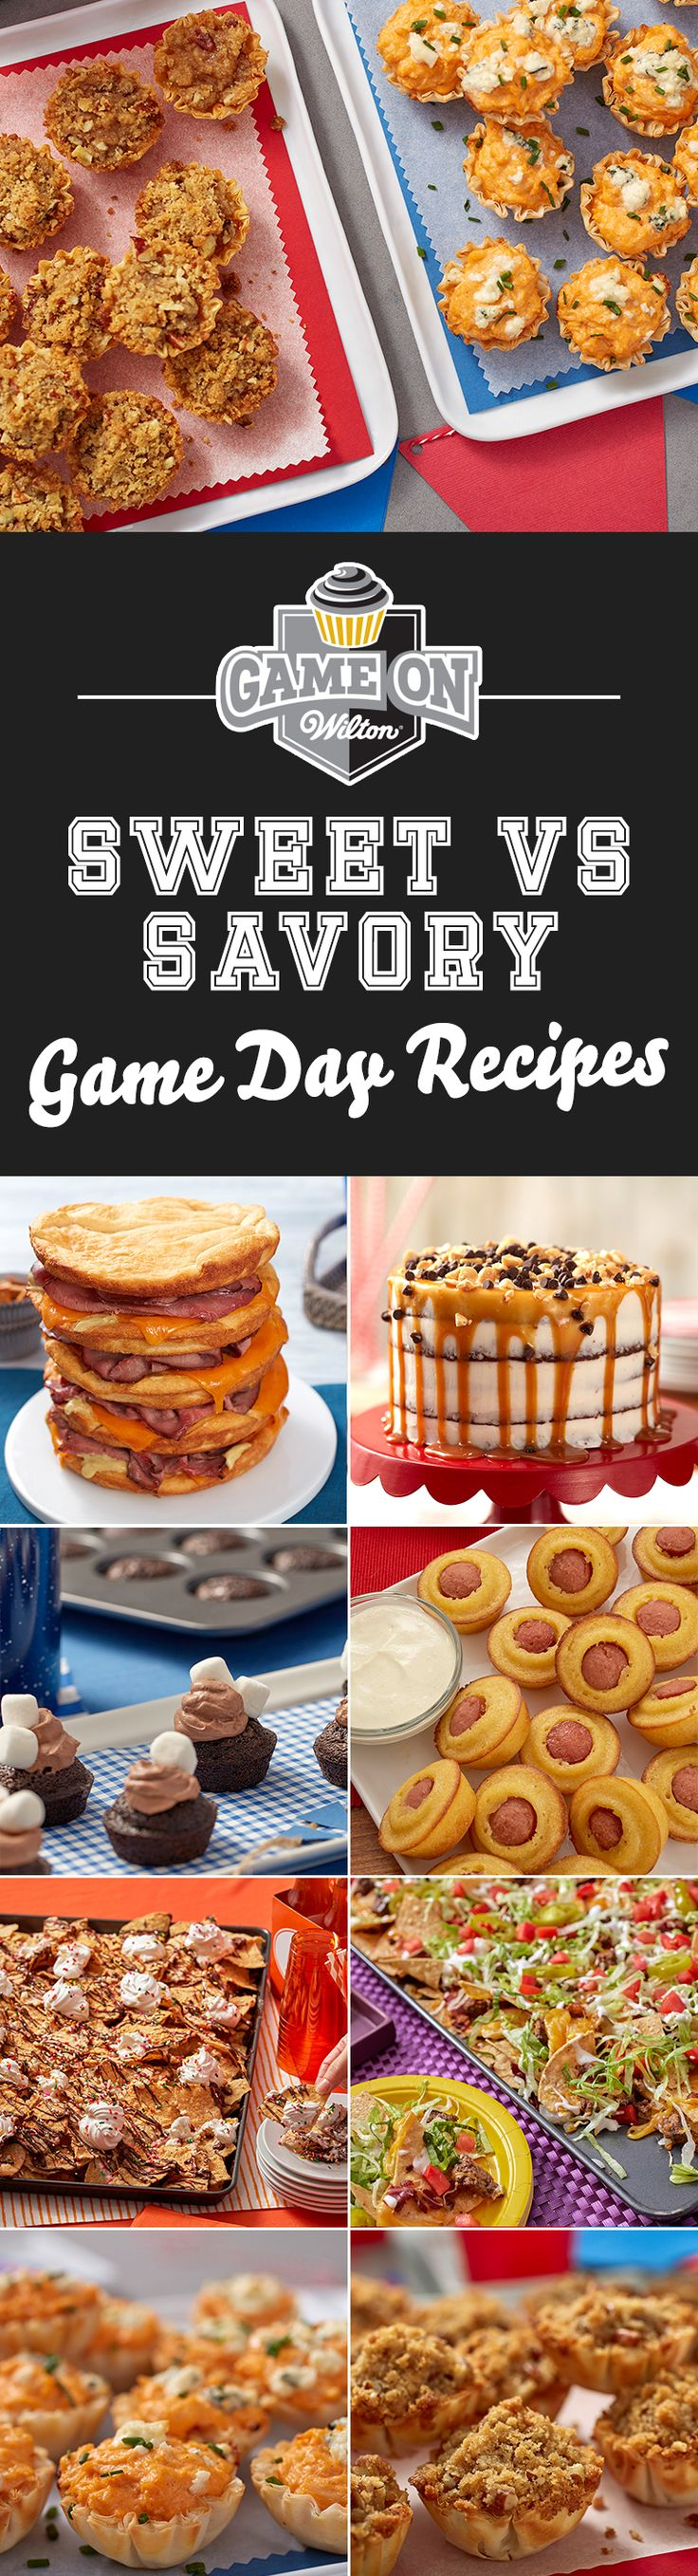 Huddle up, foodies: which team are you on? Team Sweet or Team Savory? We've rounded up all of our delicious sweet and savory game day recipes. Take a look and draft your favorite picks!